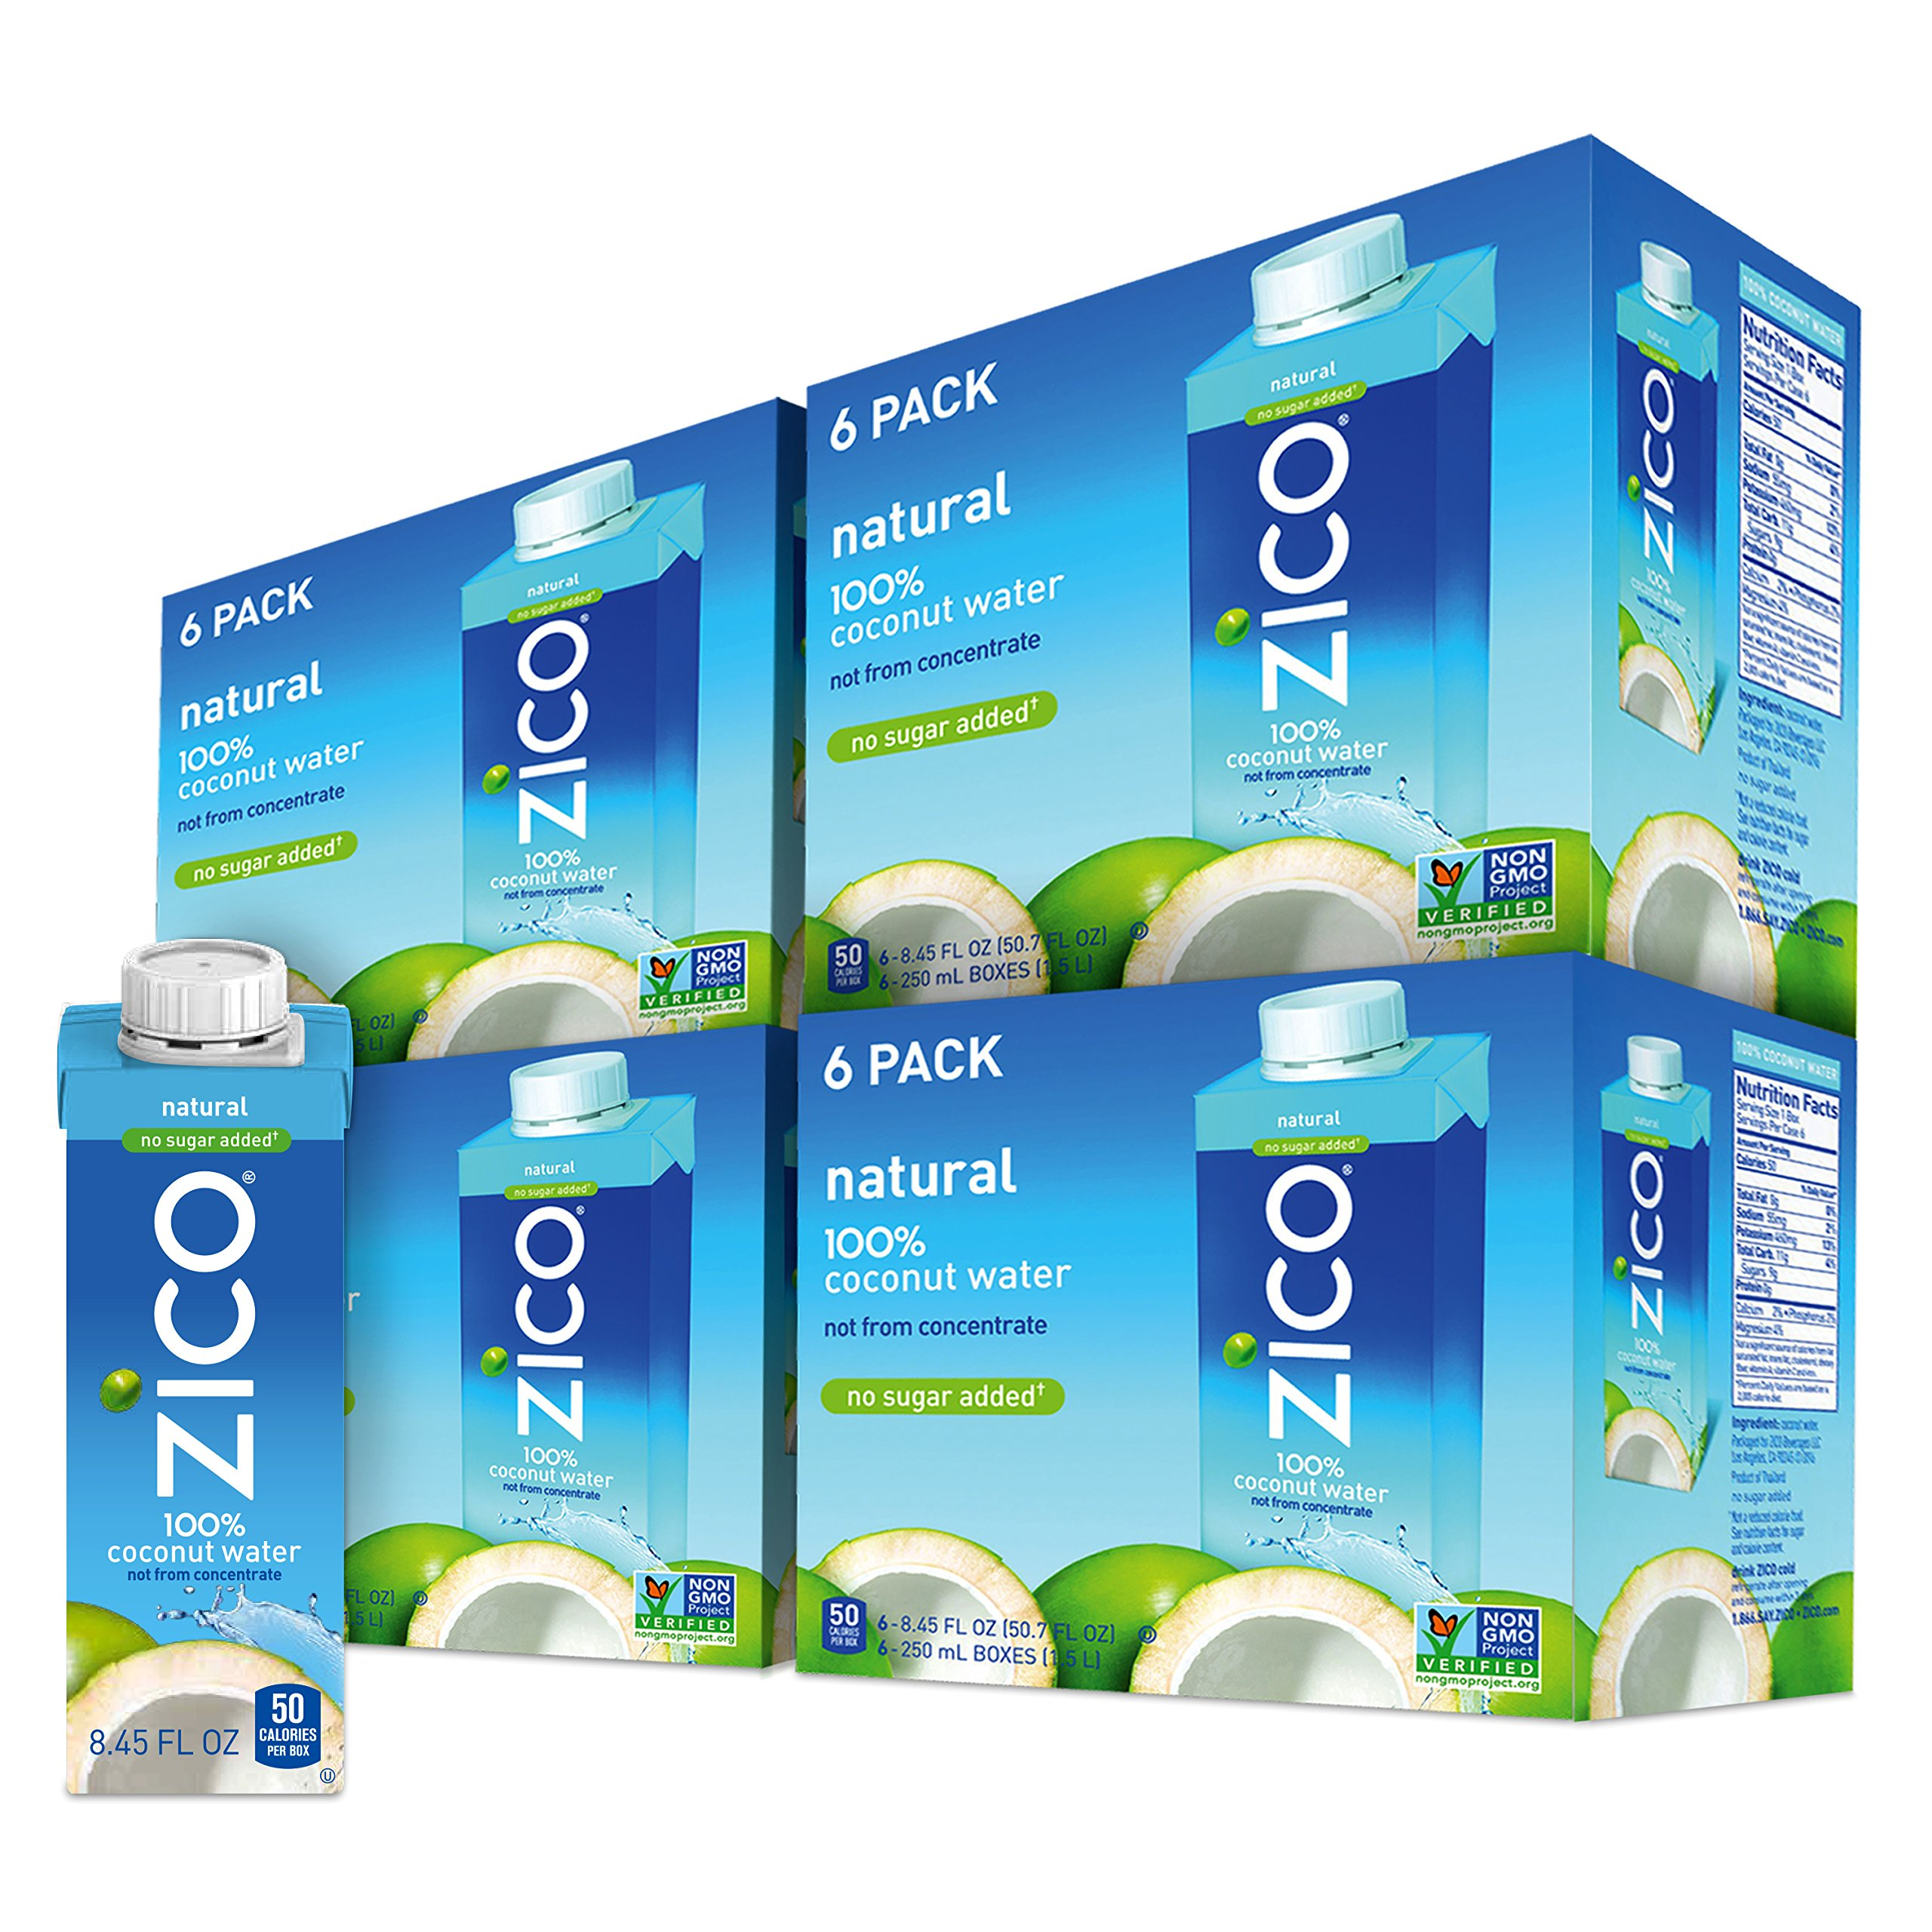 ZICO Premium Natural Coconut Water Drinks, No Sugar Added Gluten Free, 8.45 Fluid Ounce (Pack of 24) by Zico Beverages